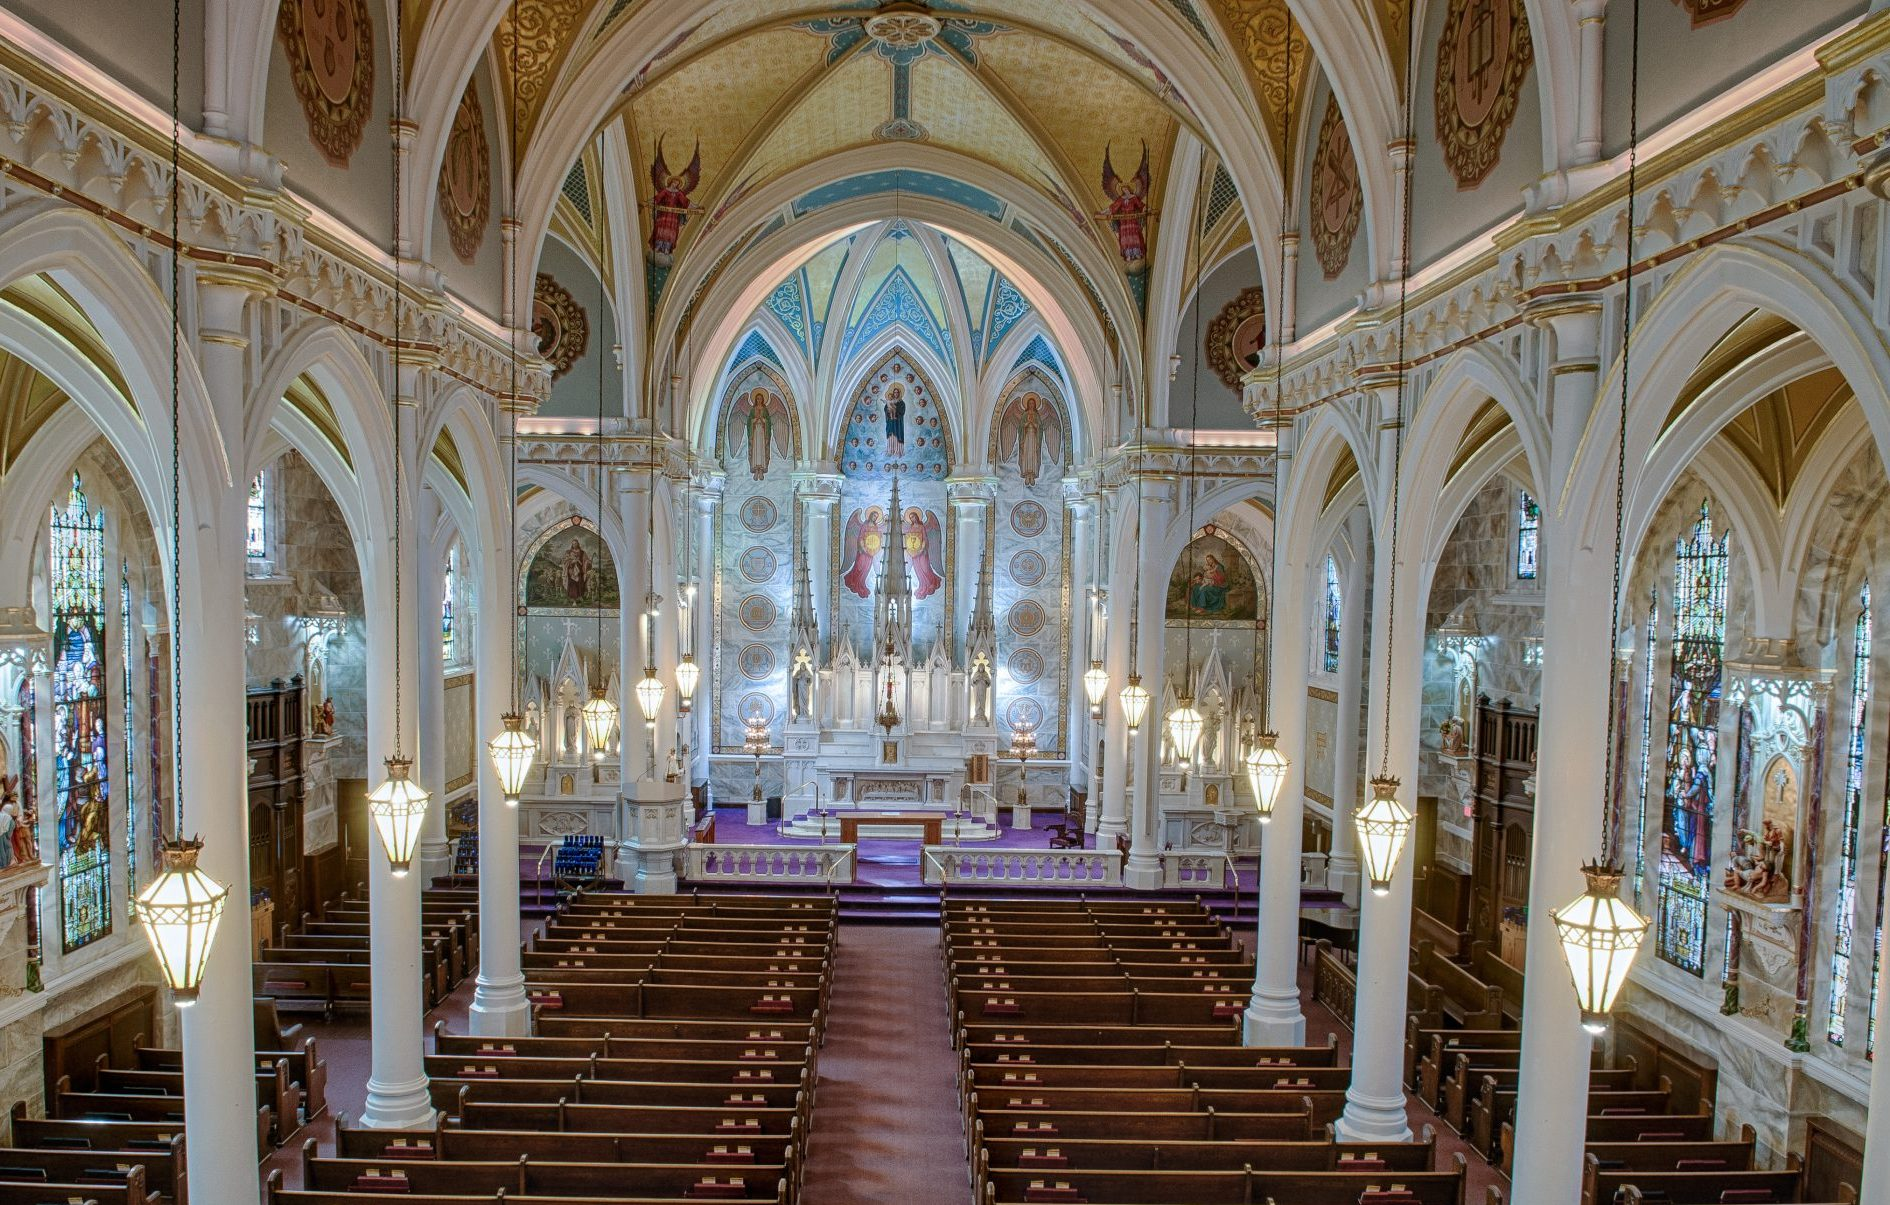 The interior of St. Mary of the Angels Church in Olean. Photo courtesy of Darrel Gronemeier.